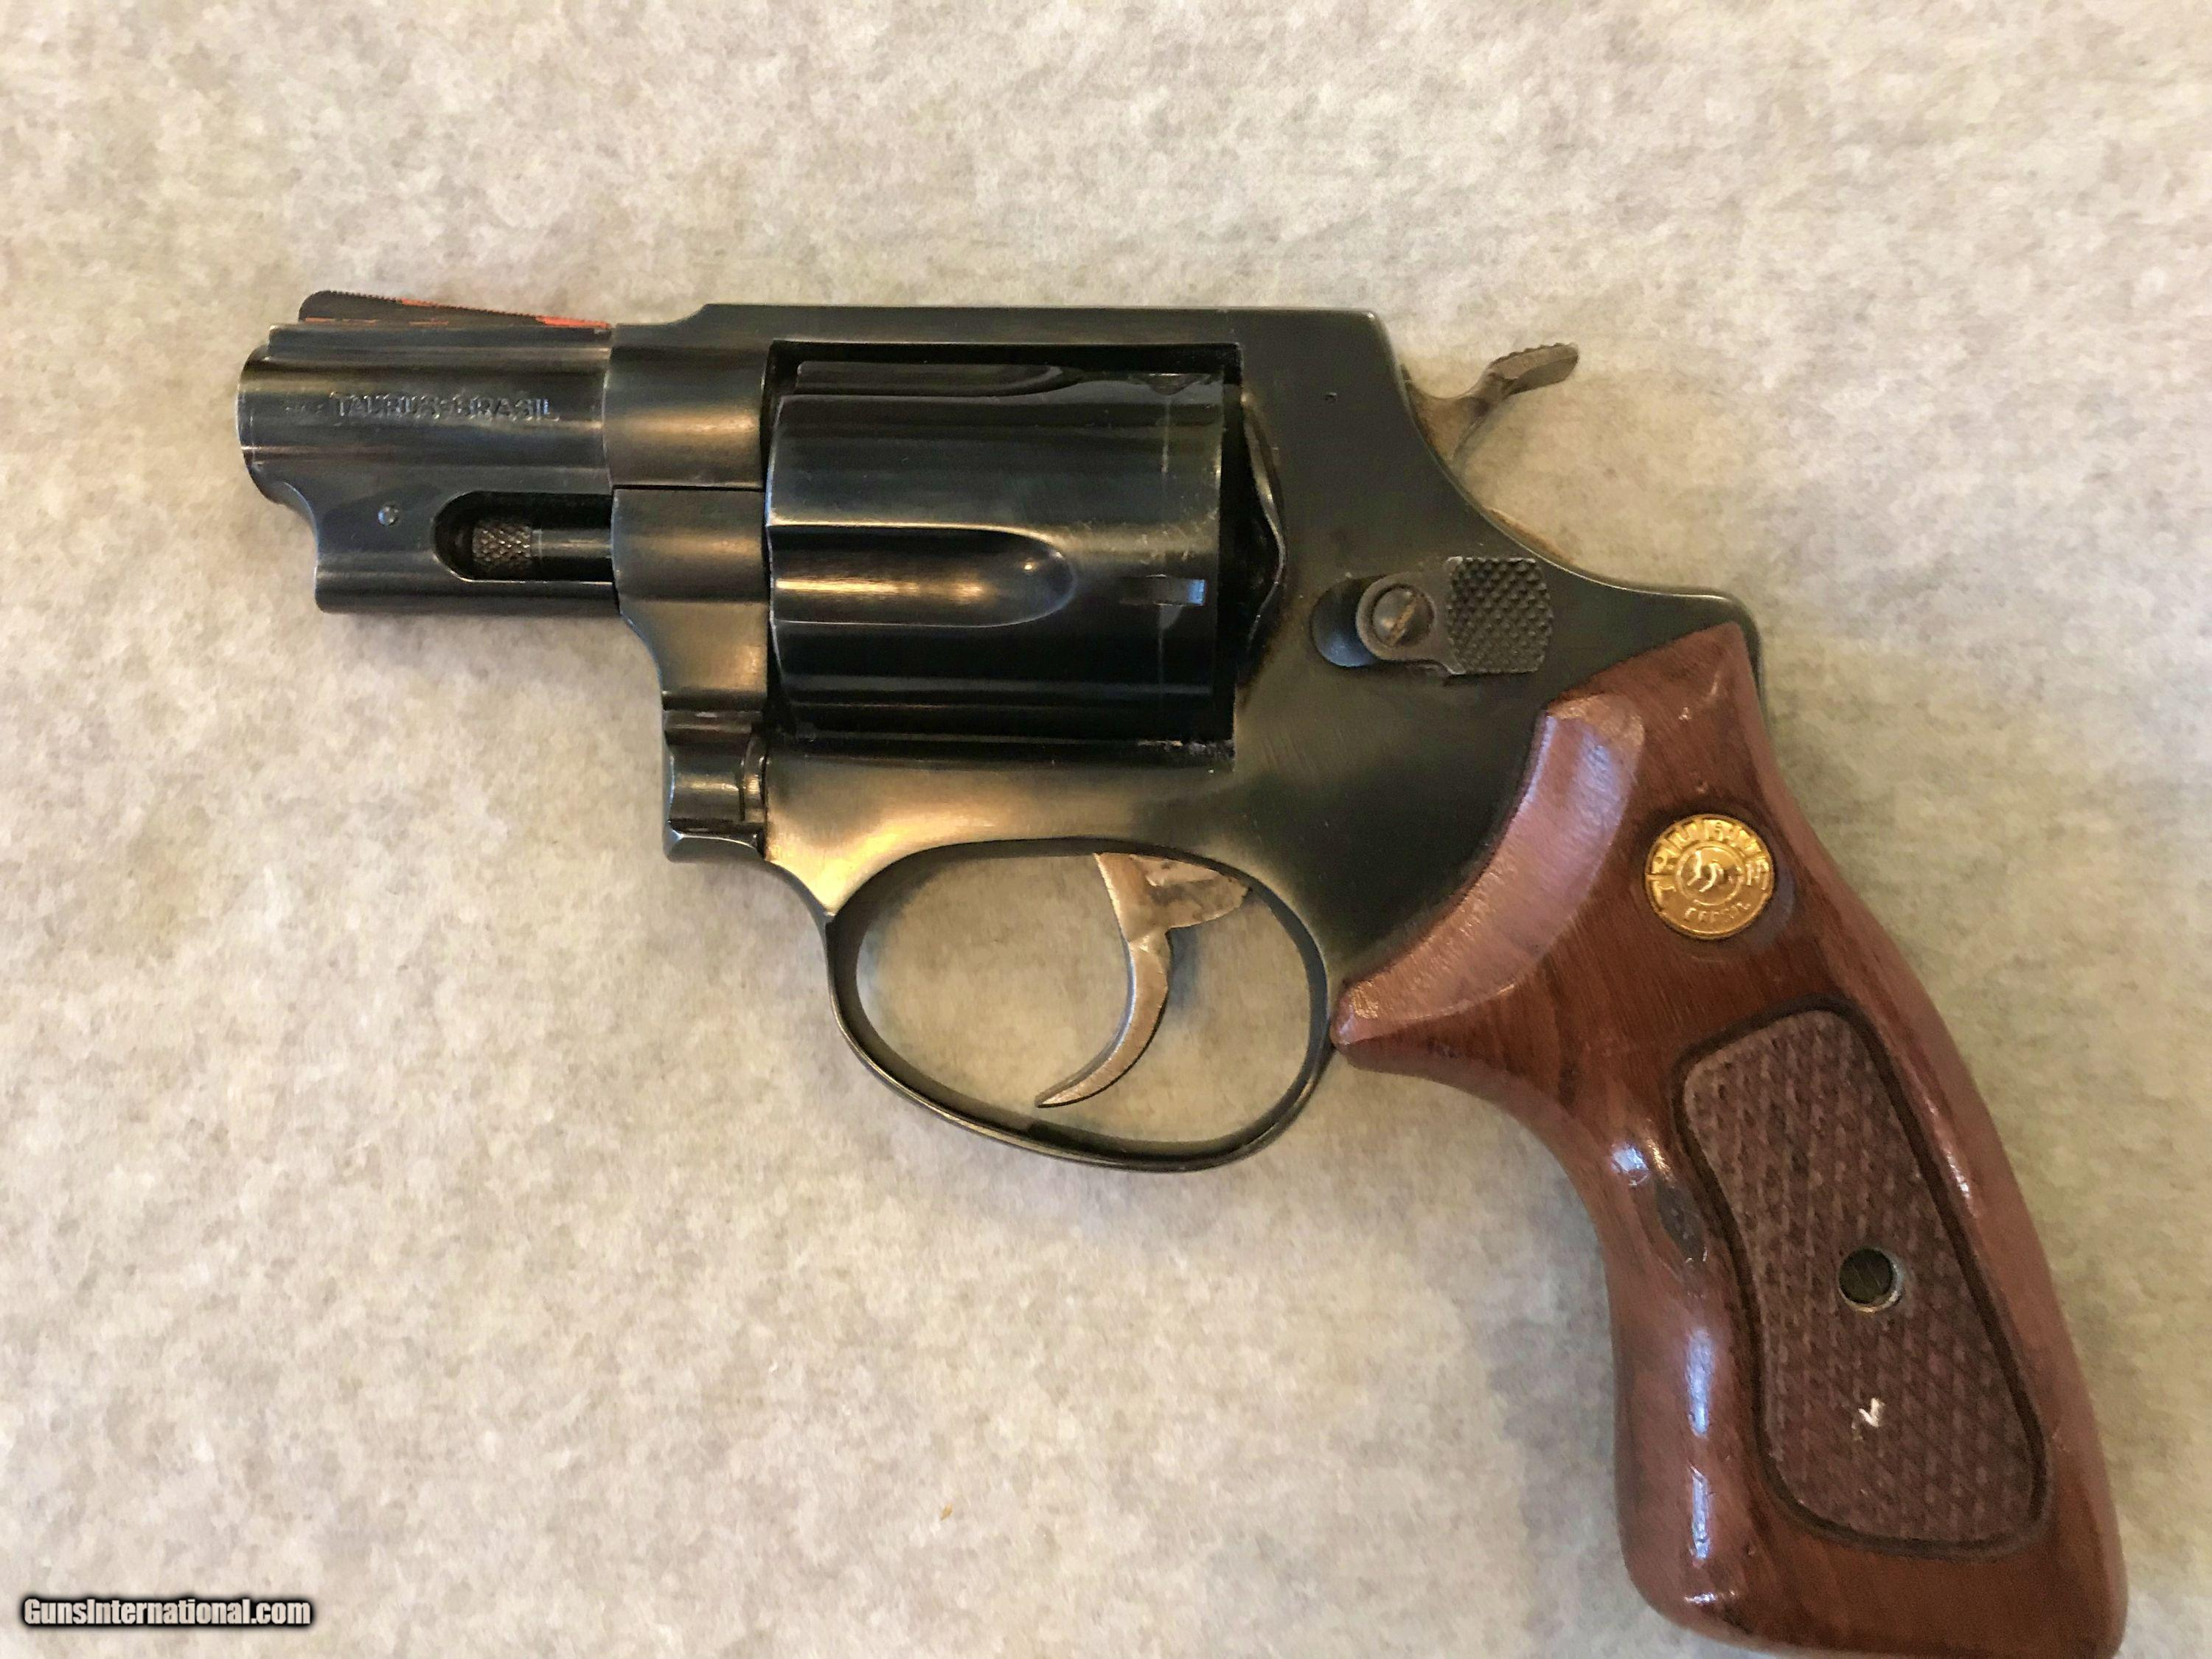 TAURUS MODEL 85 SNUB NOSE 38 SPECIAL MFG 1987